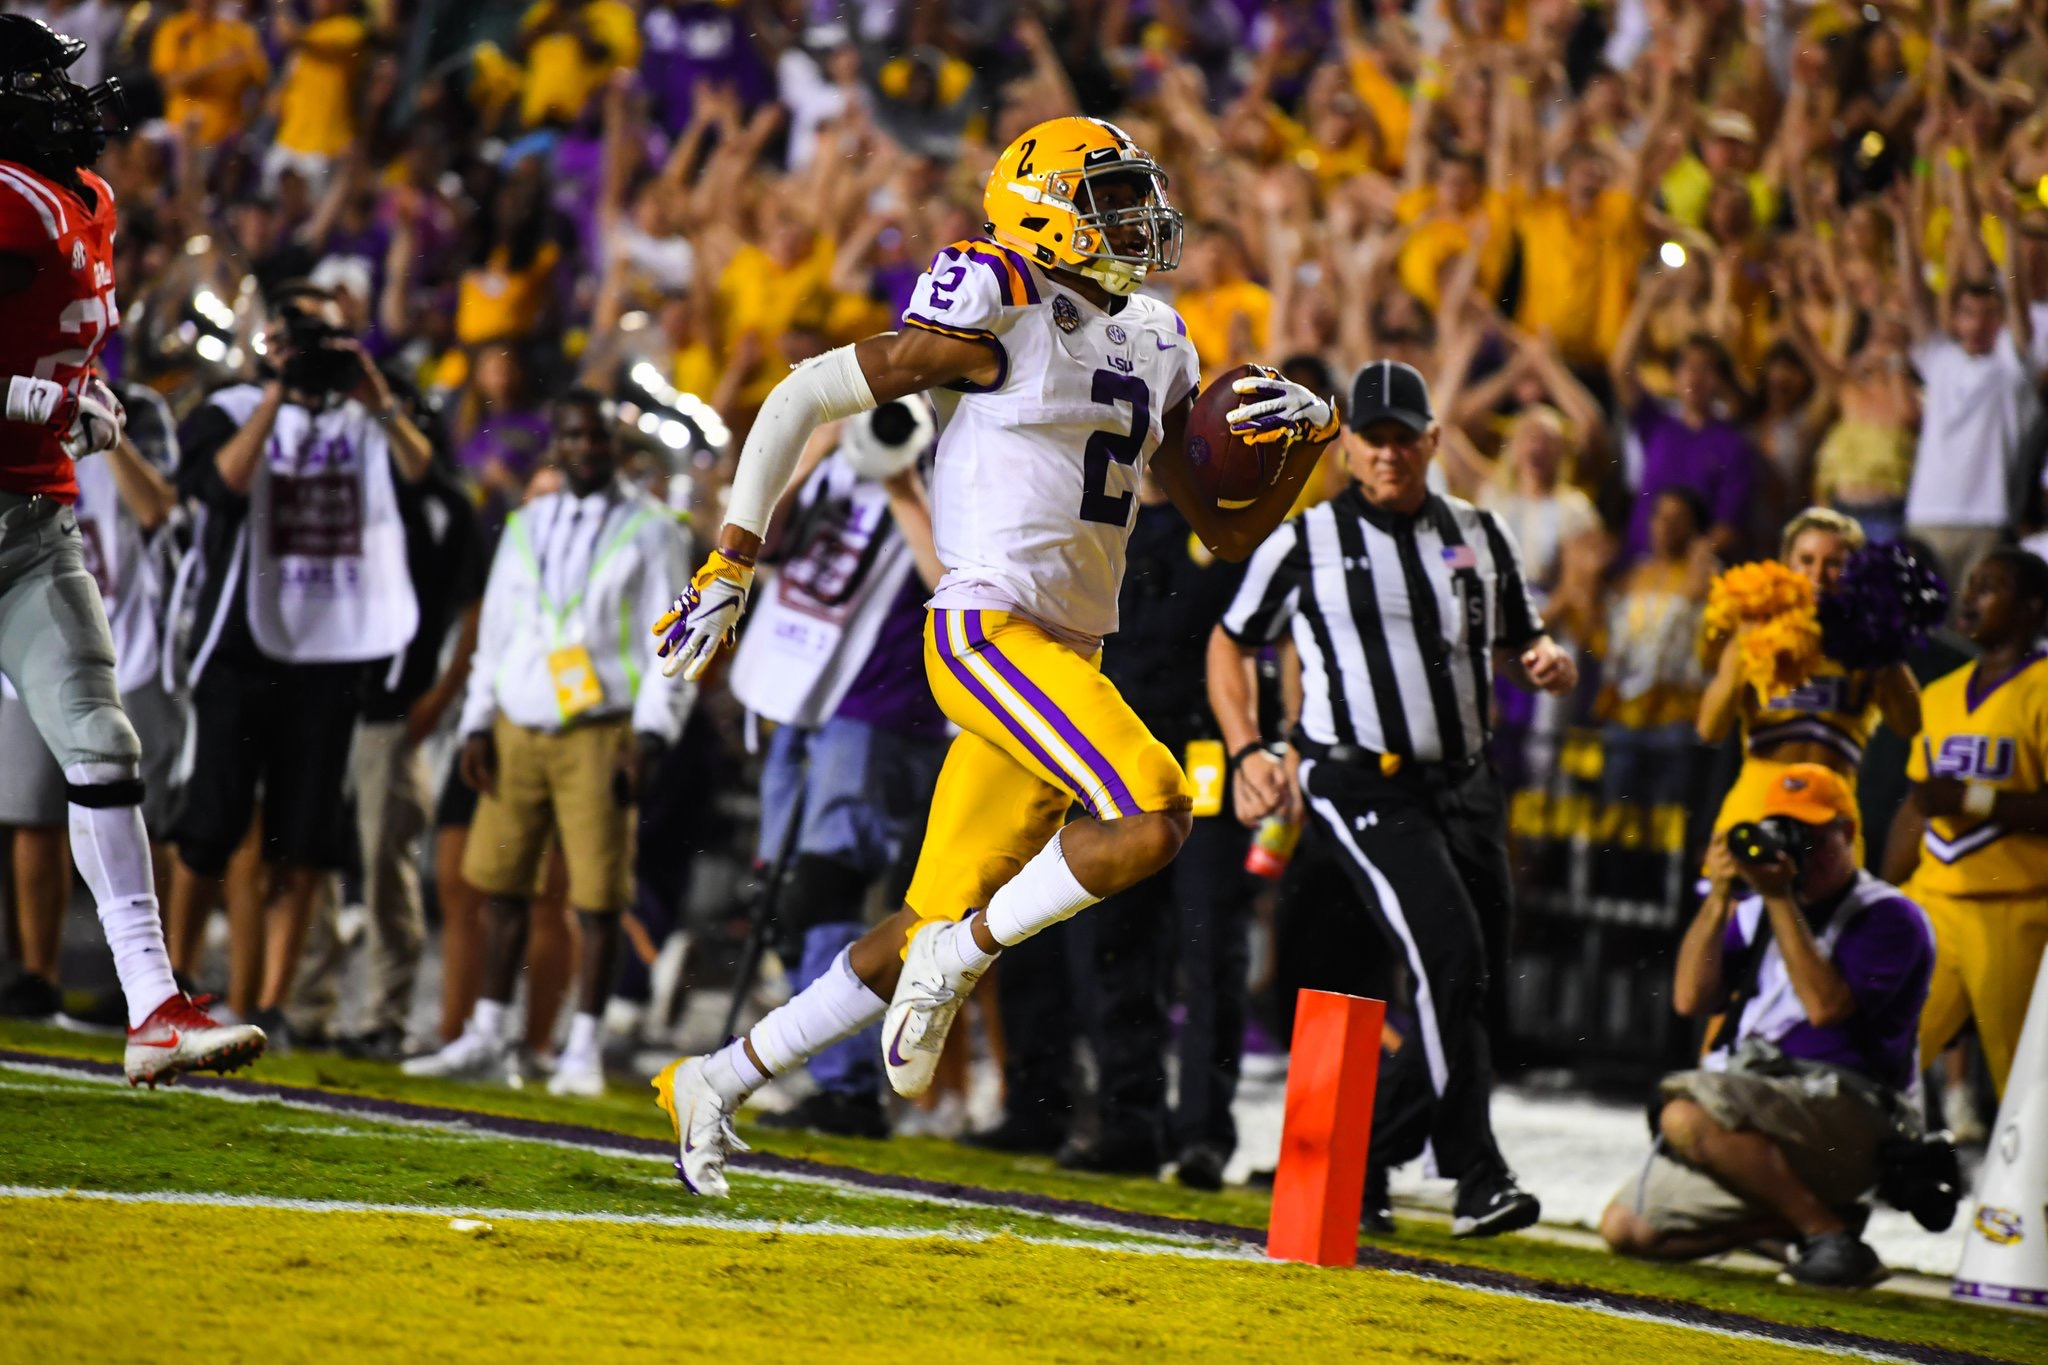 LSU, Joe Burrow power past Ole Miss, 45-16